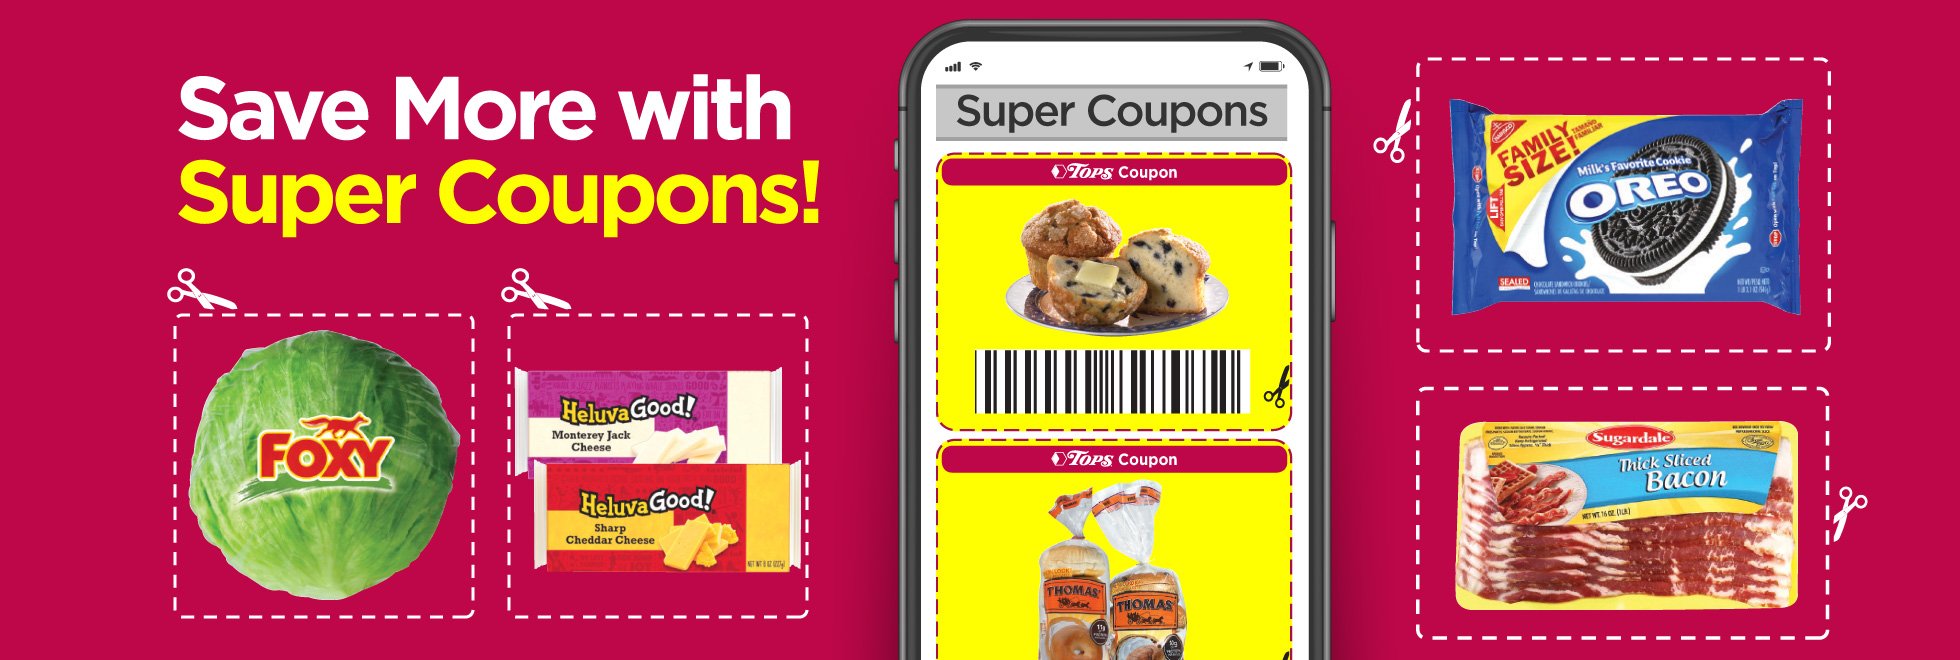 Tops Super Couon Savings